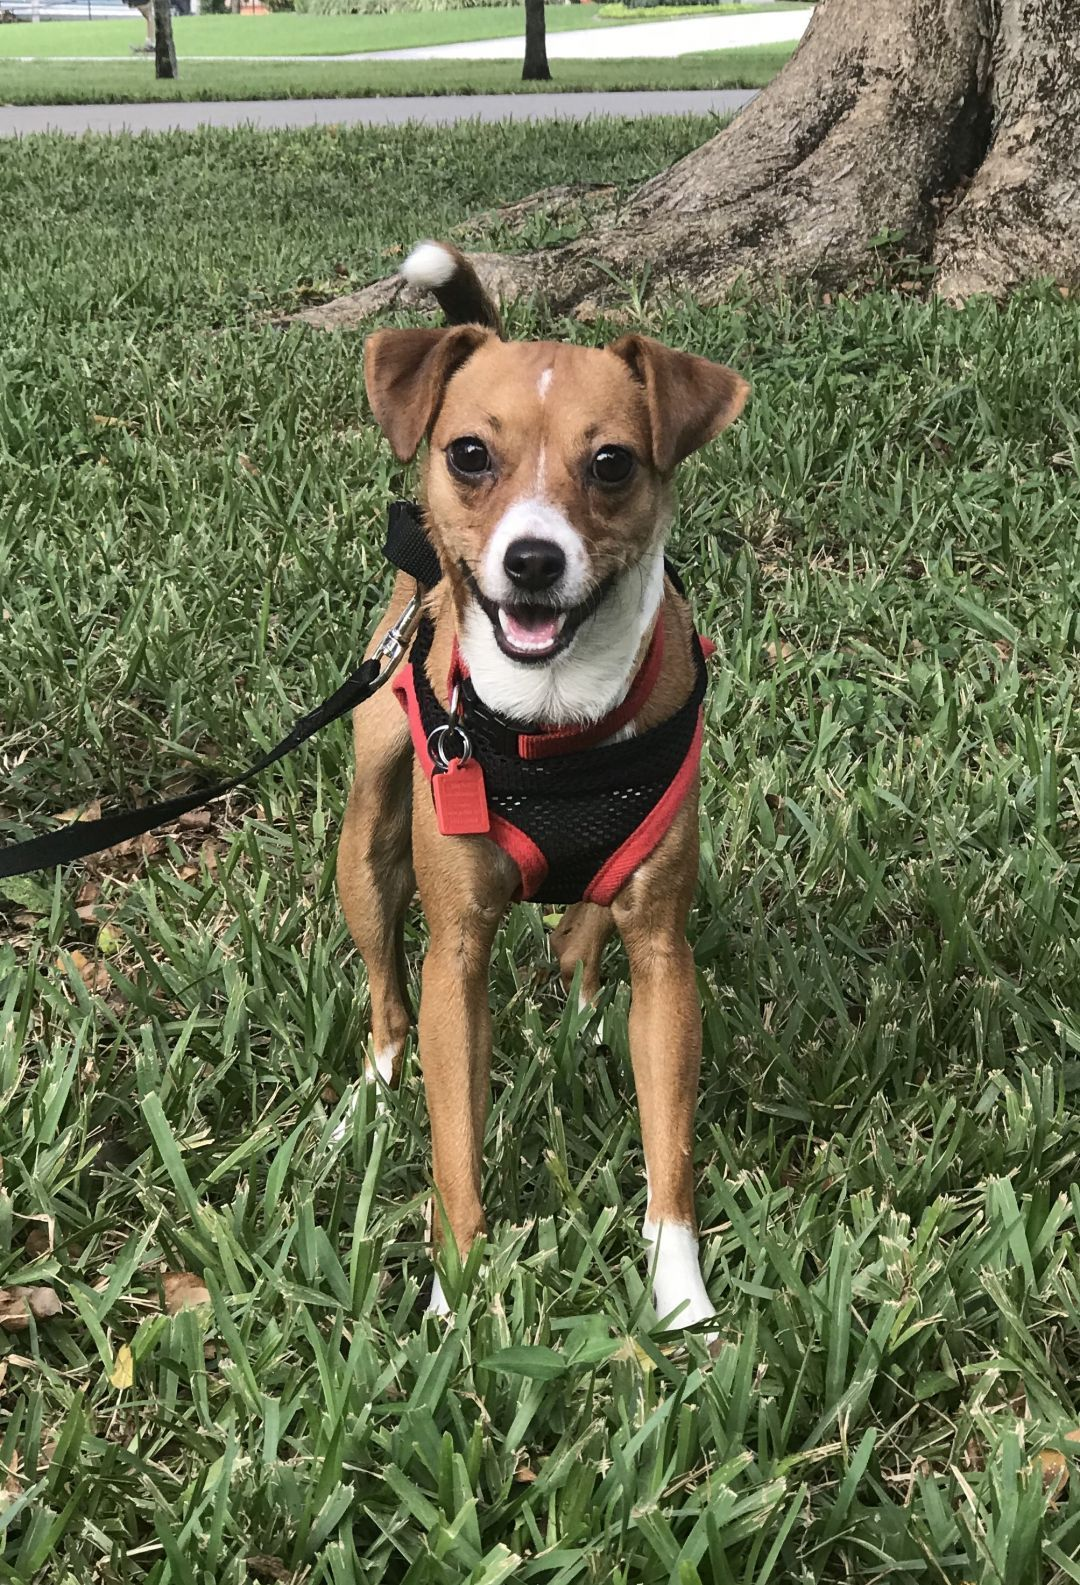 Available Pets At Dachshund Rescue South Florida In Weston Florida Dachshund Adoption Dachshund Rescue Dachshund